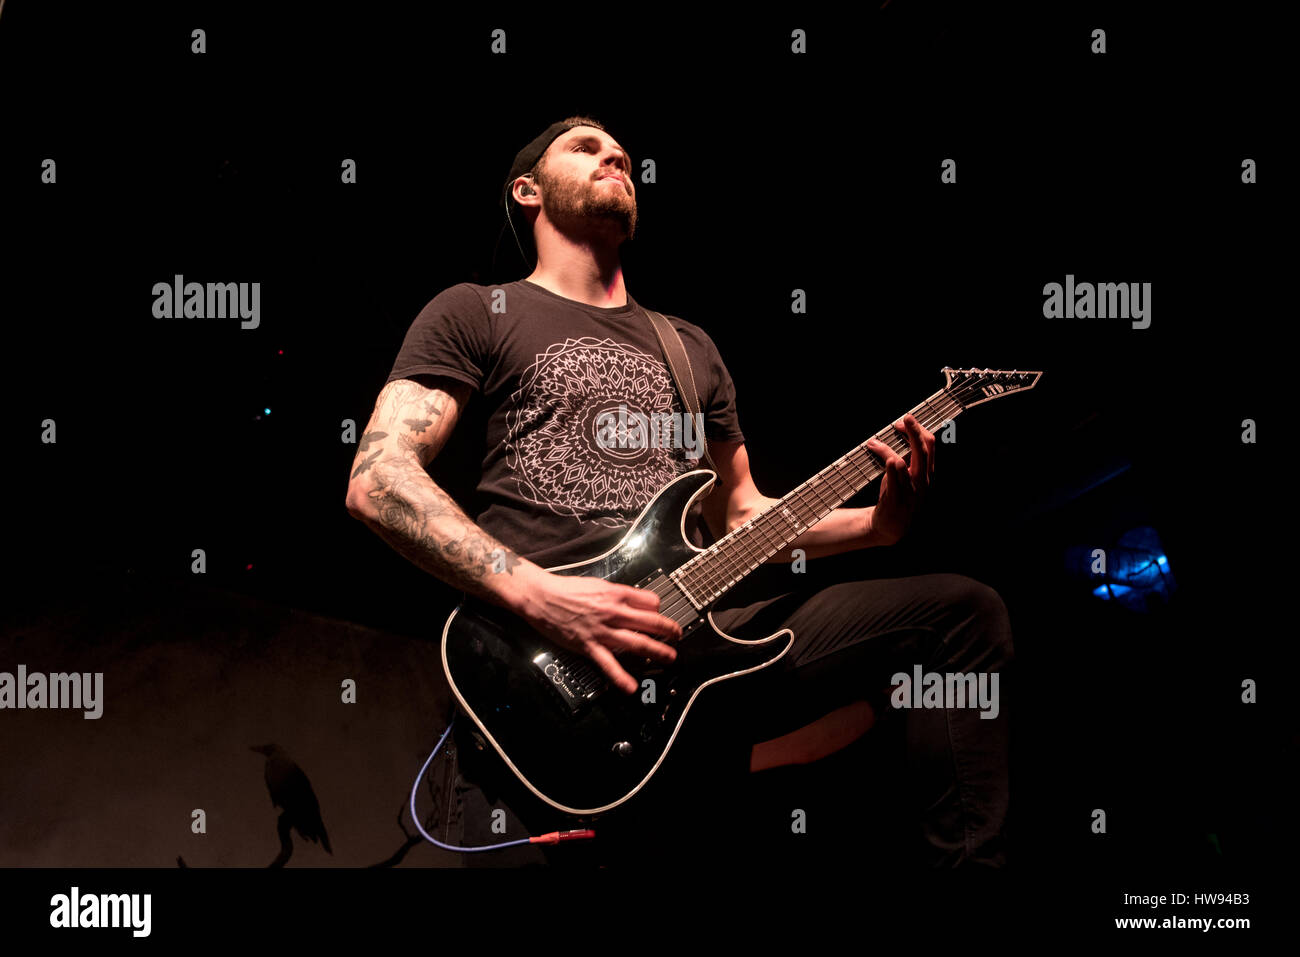 Metalcore band The Raven Age perform at Live Music Club in this picture George Harris the Steve Harris son's - Stock Image